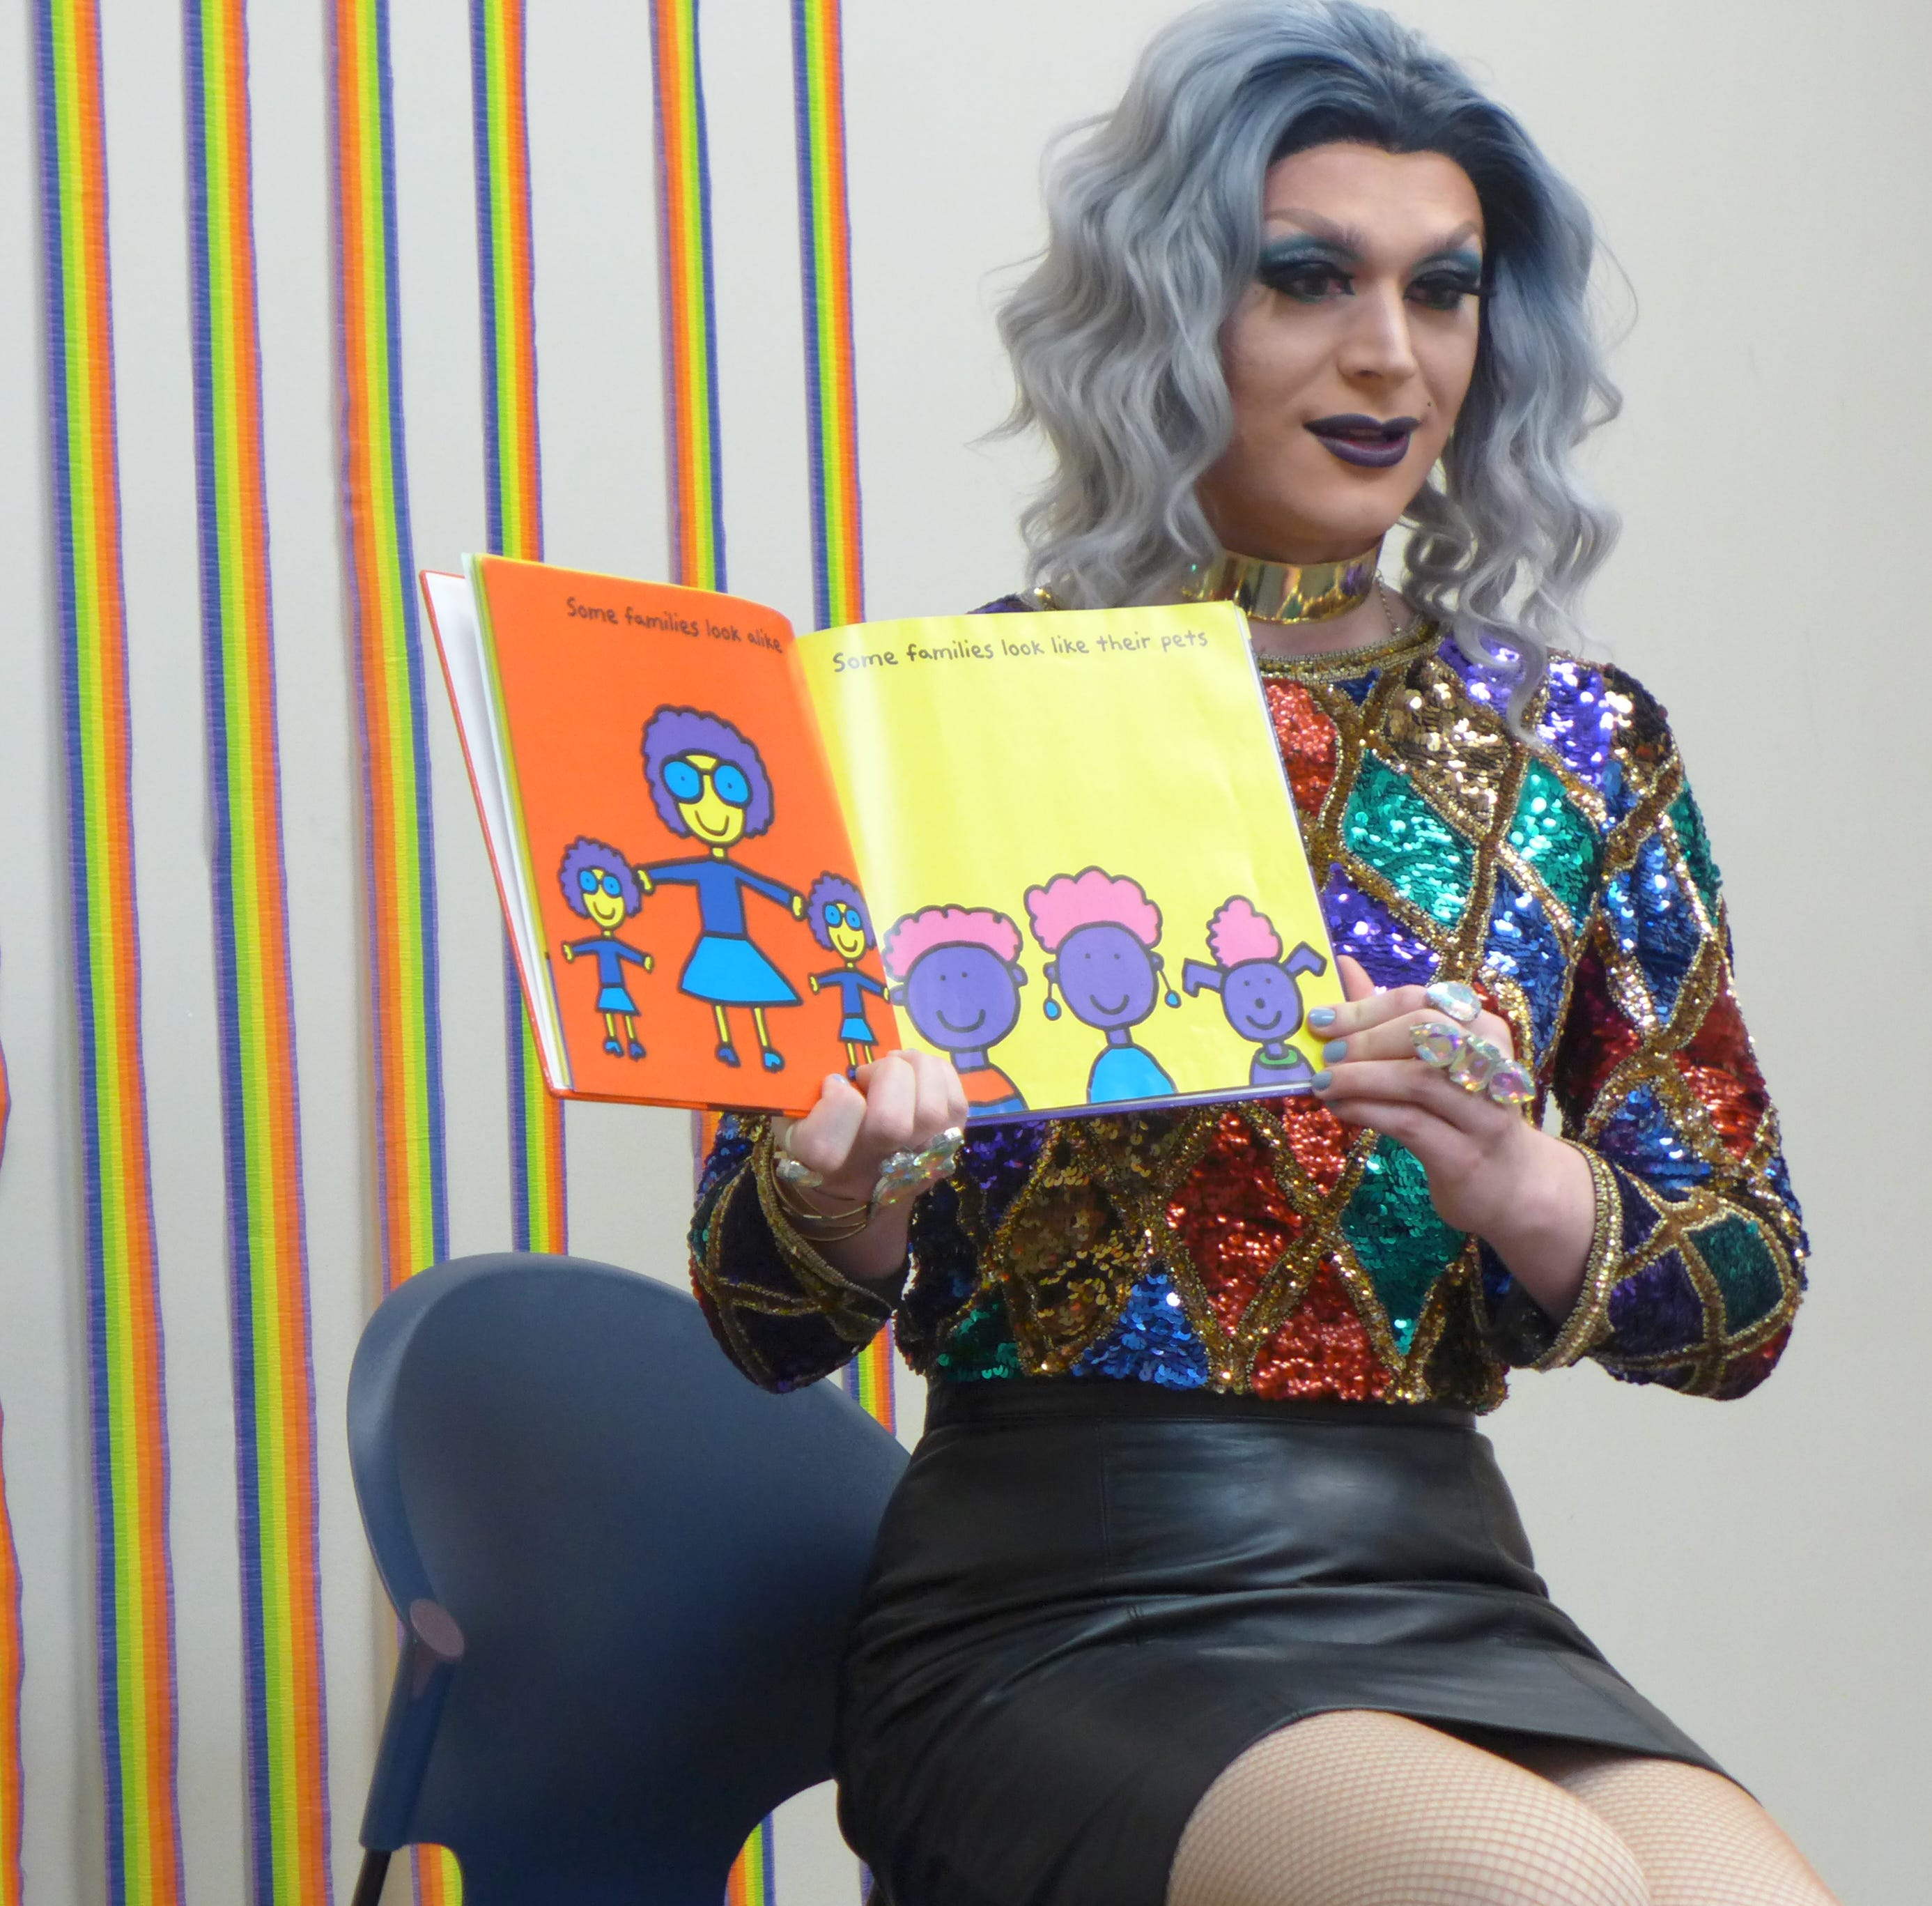 Louisville library drag queen event is off. Here's what went down in other cities